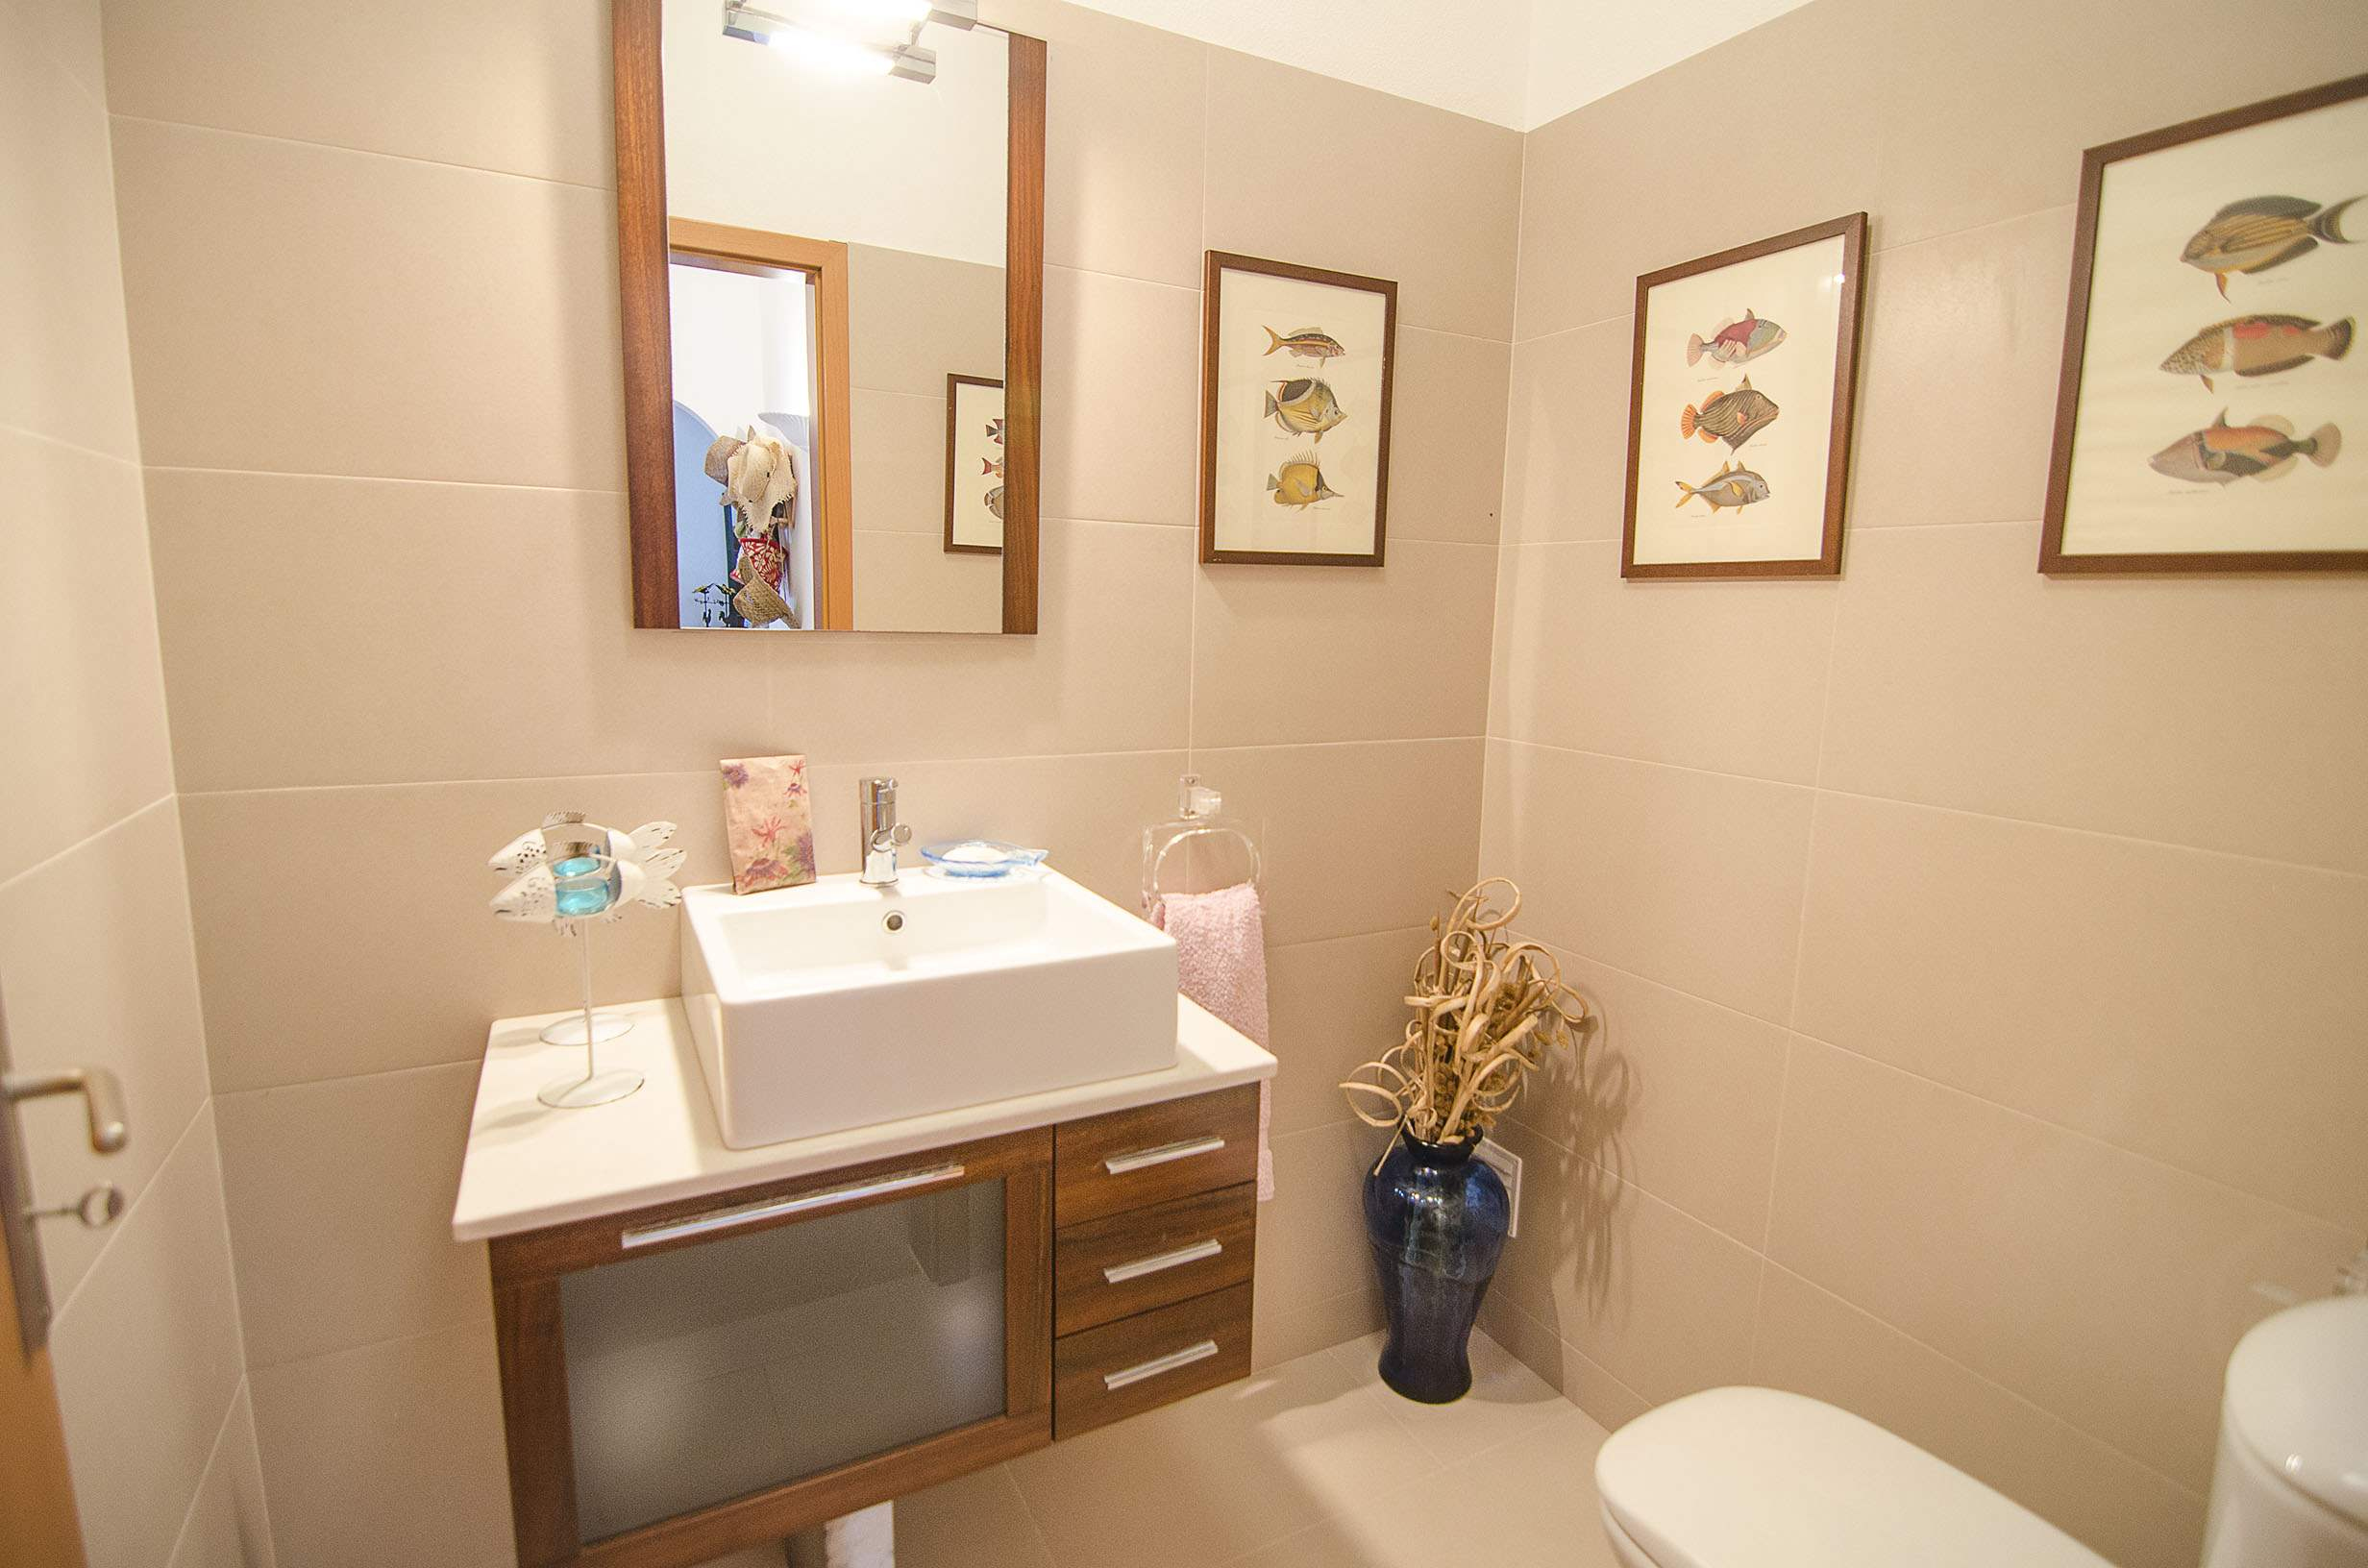 Villa Clara, 4 bedroom villa in Vilamoura Area, Algarve Photo #21